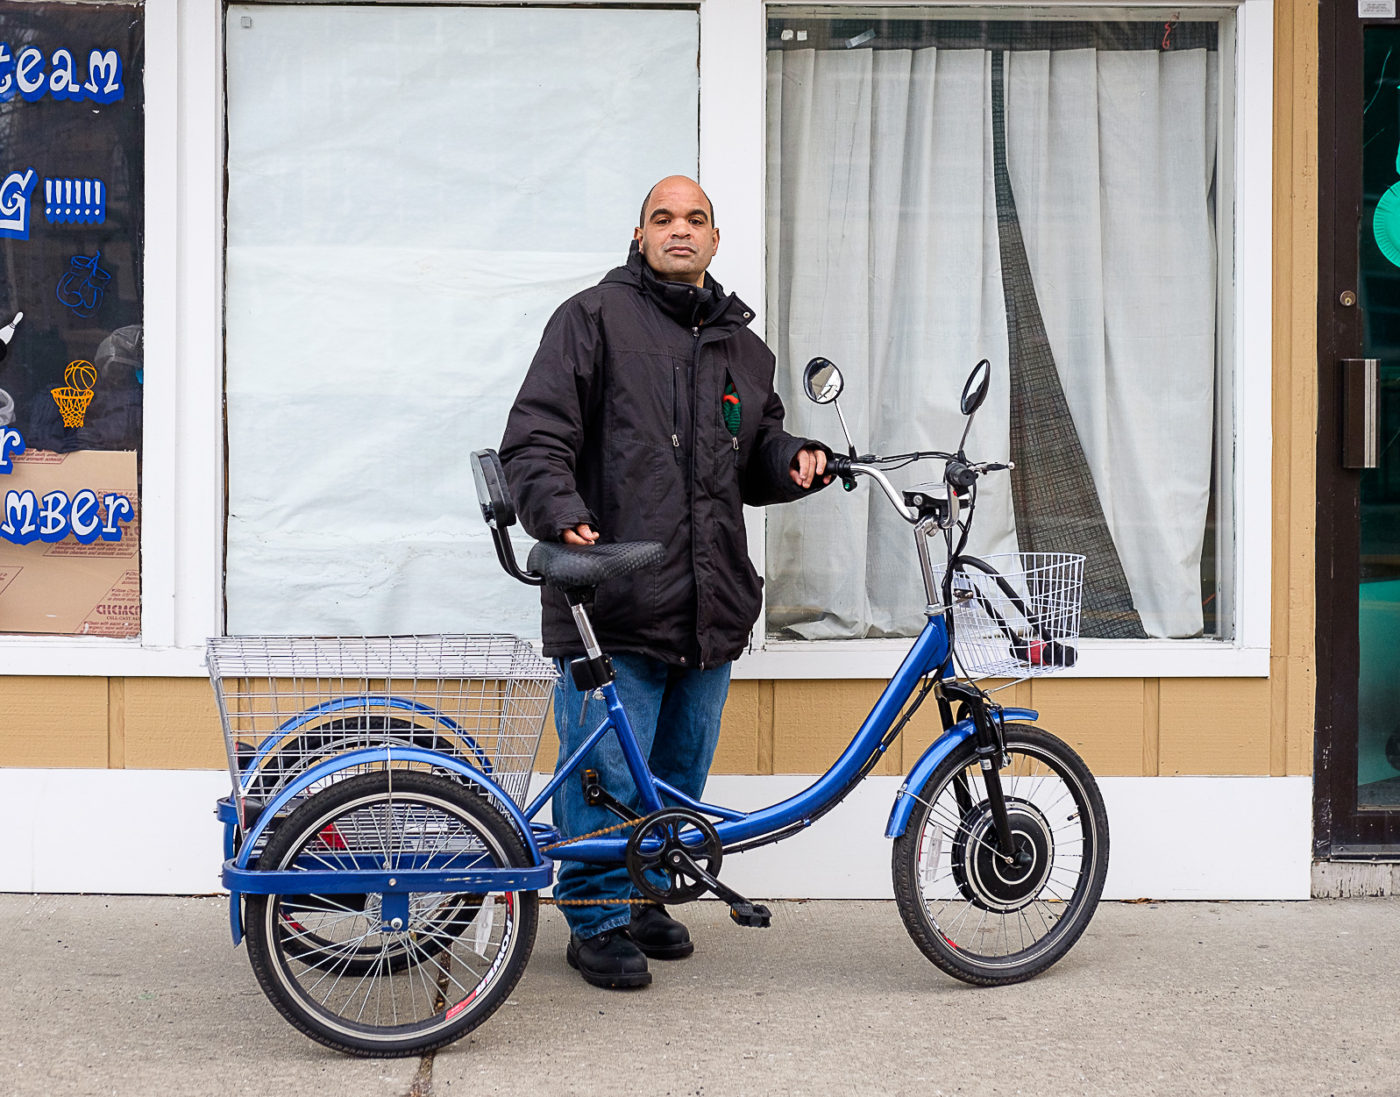 Tricycle trend setter - Portraits of the Jersey Shore